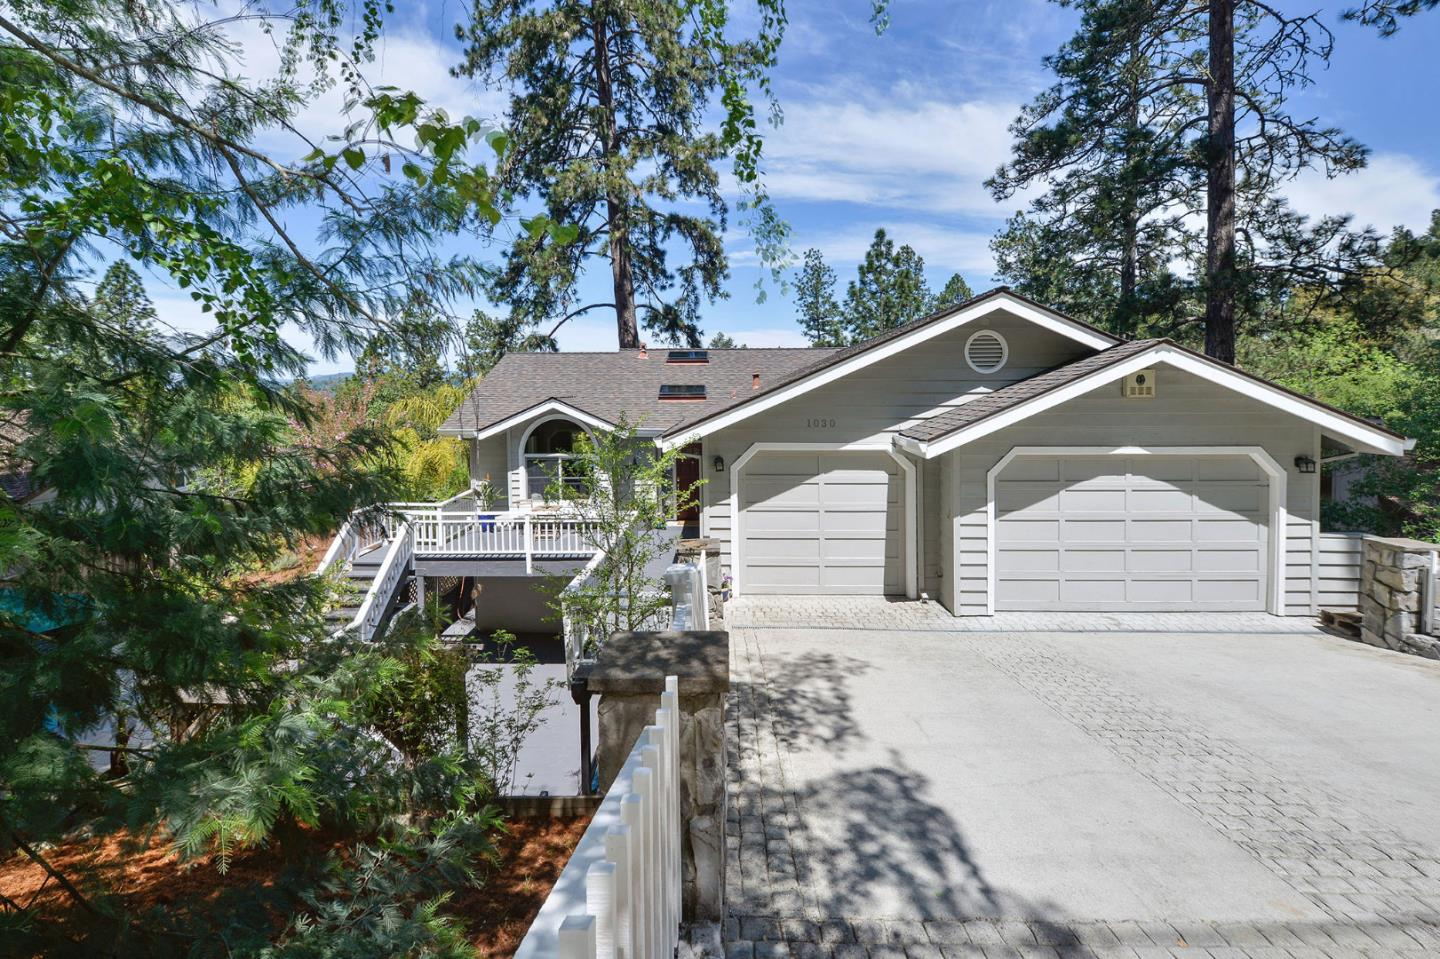 Detail Gallery Image 1 of 60 For 1030 Whispering Pines Dr, Scotts Valley, CA, 95066 - 4 Beds | 2/1 Baths